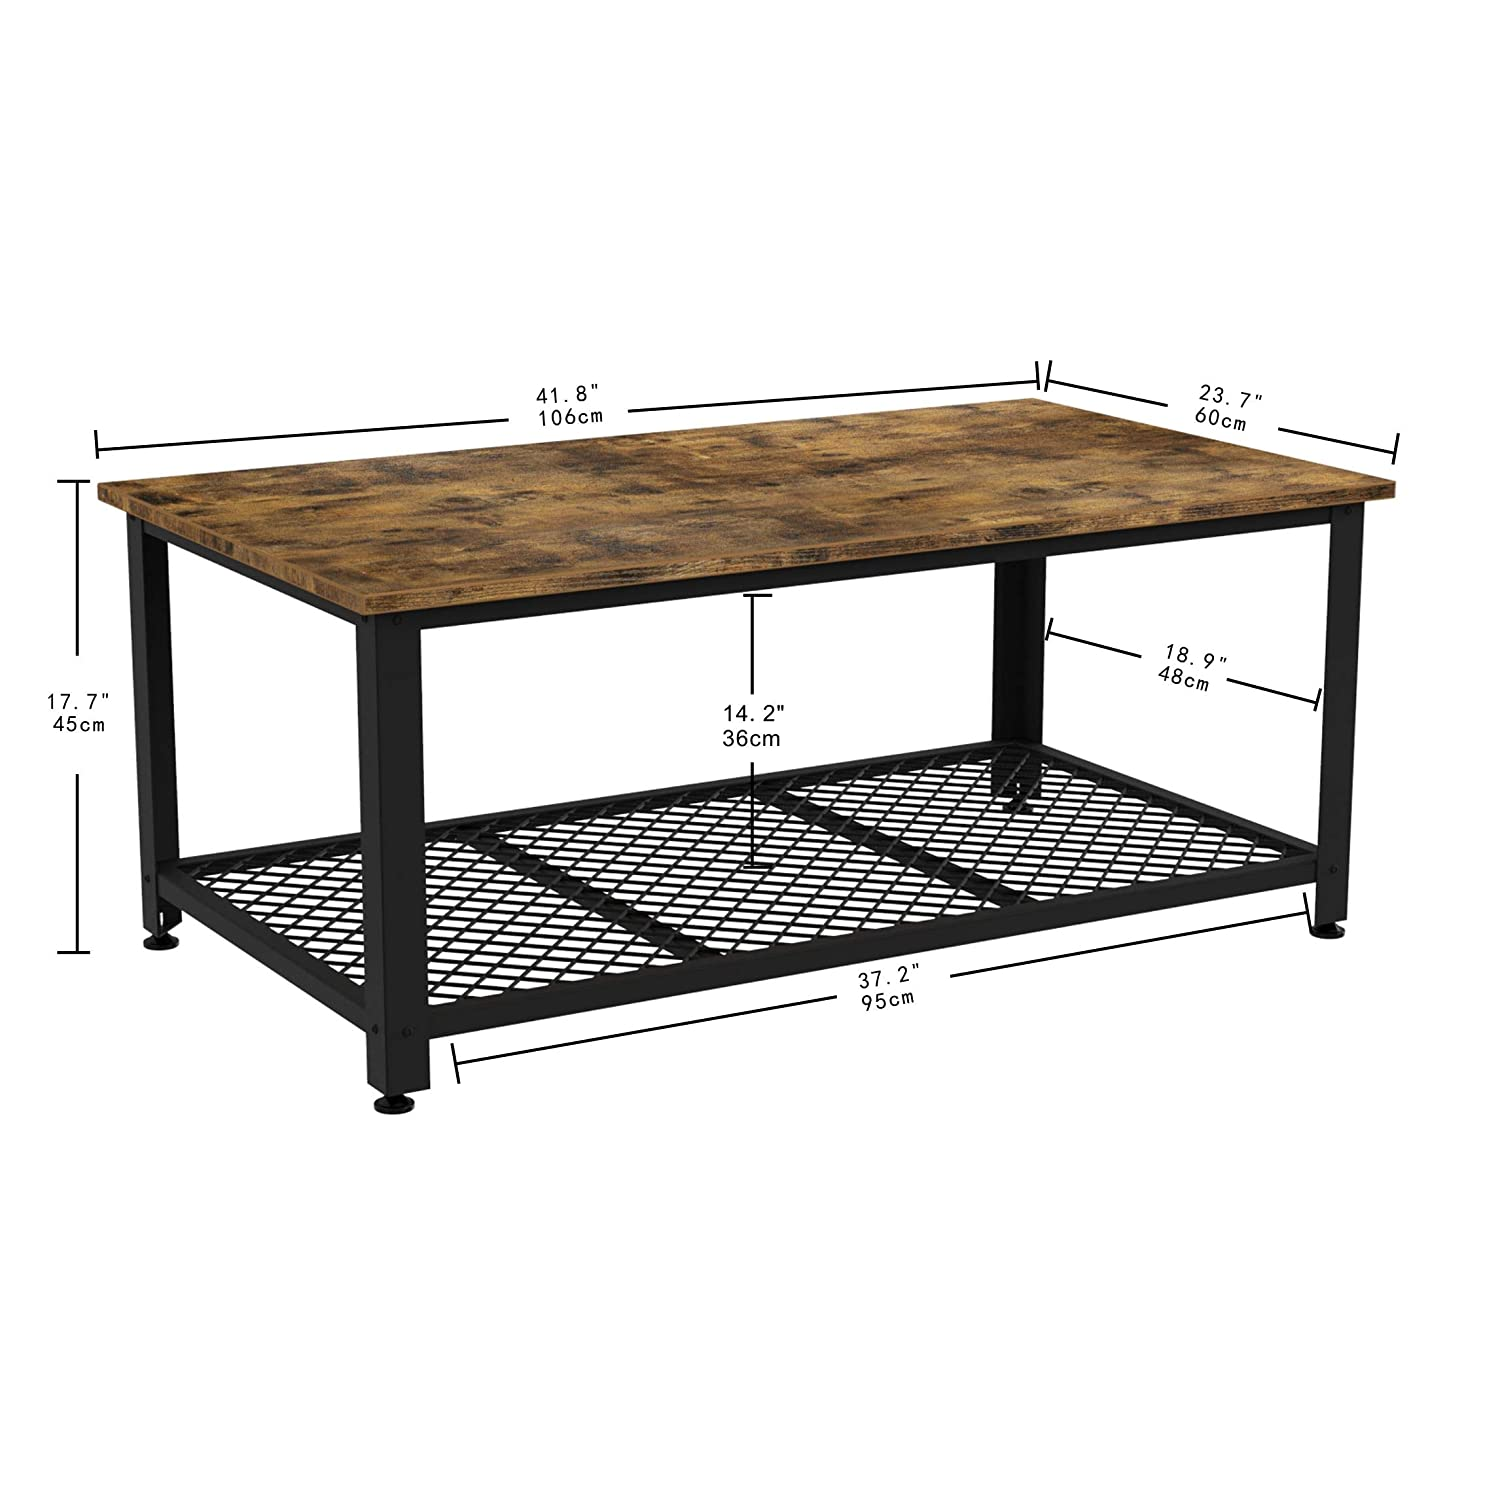 Rustic Home Decor IRONCK Industrial Coffee Table for Living Room Wood Look Accent Furniture with Metal Frame Tea Table with Storage Shelf Easy Assembly